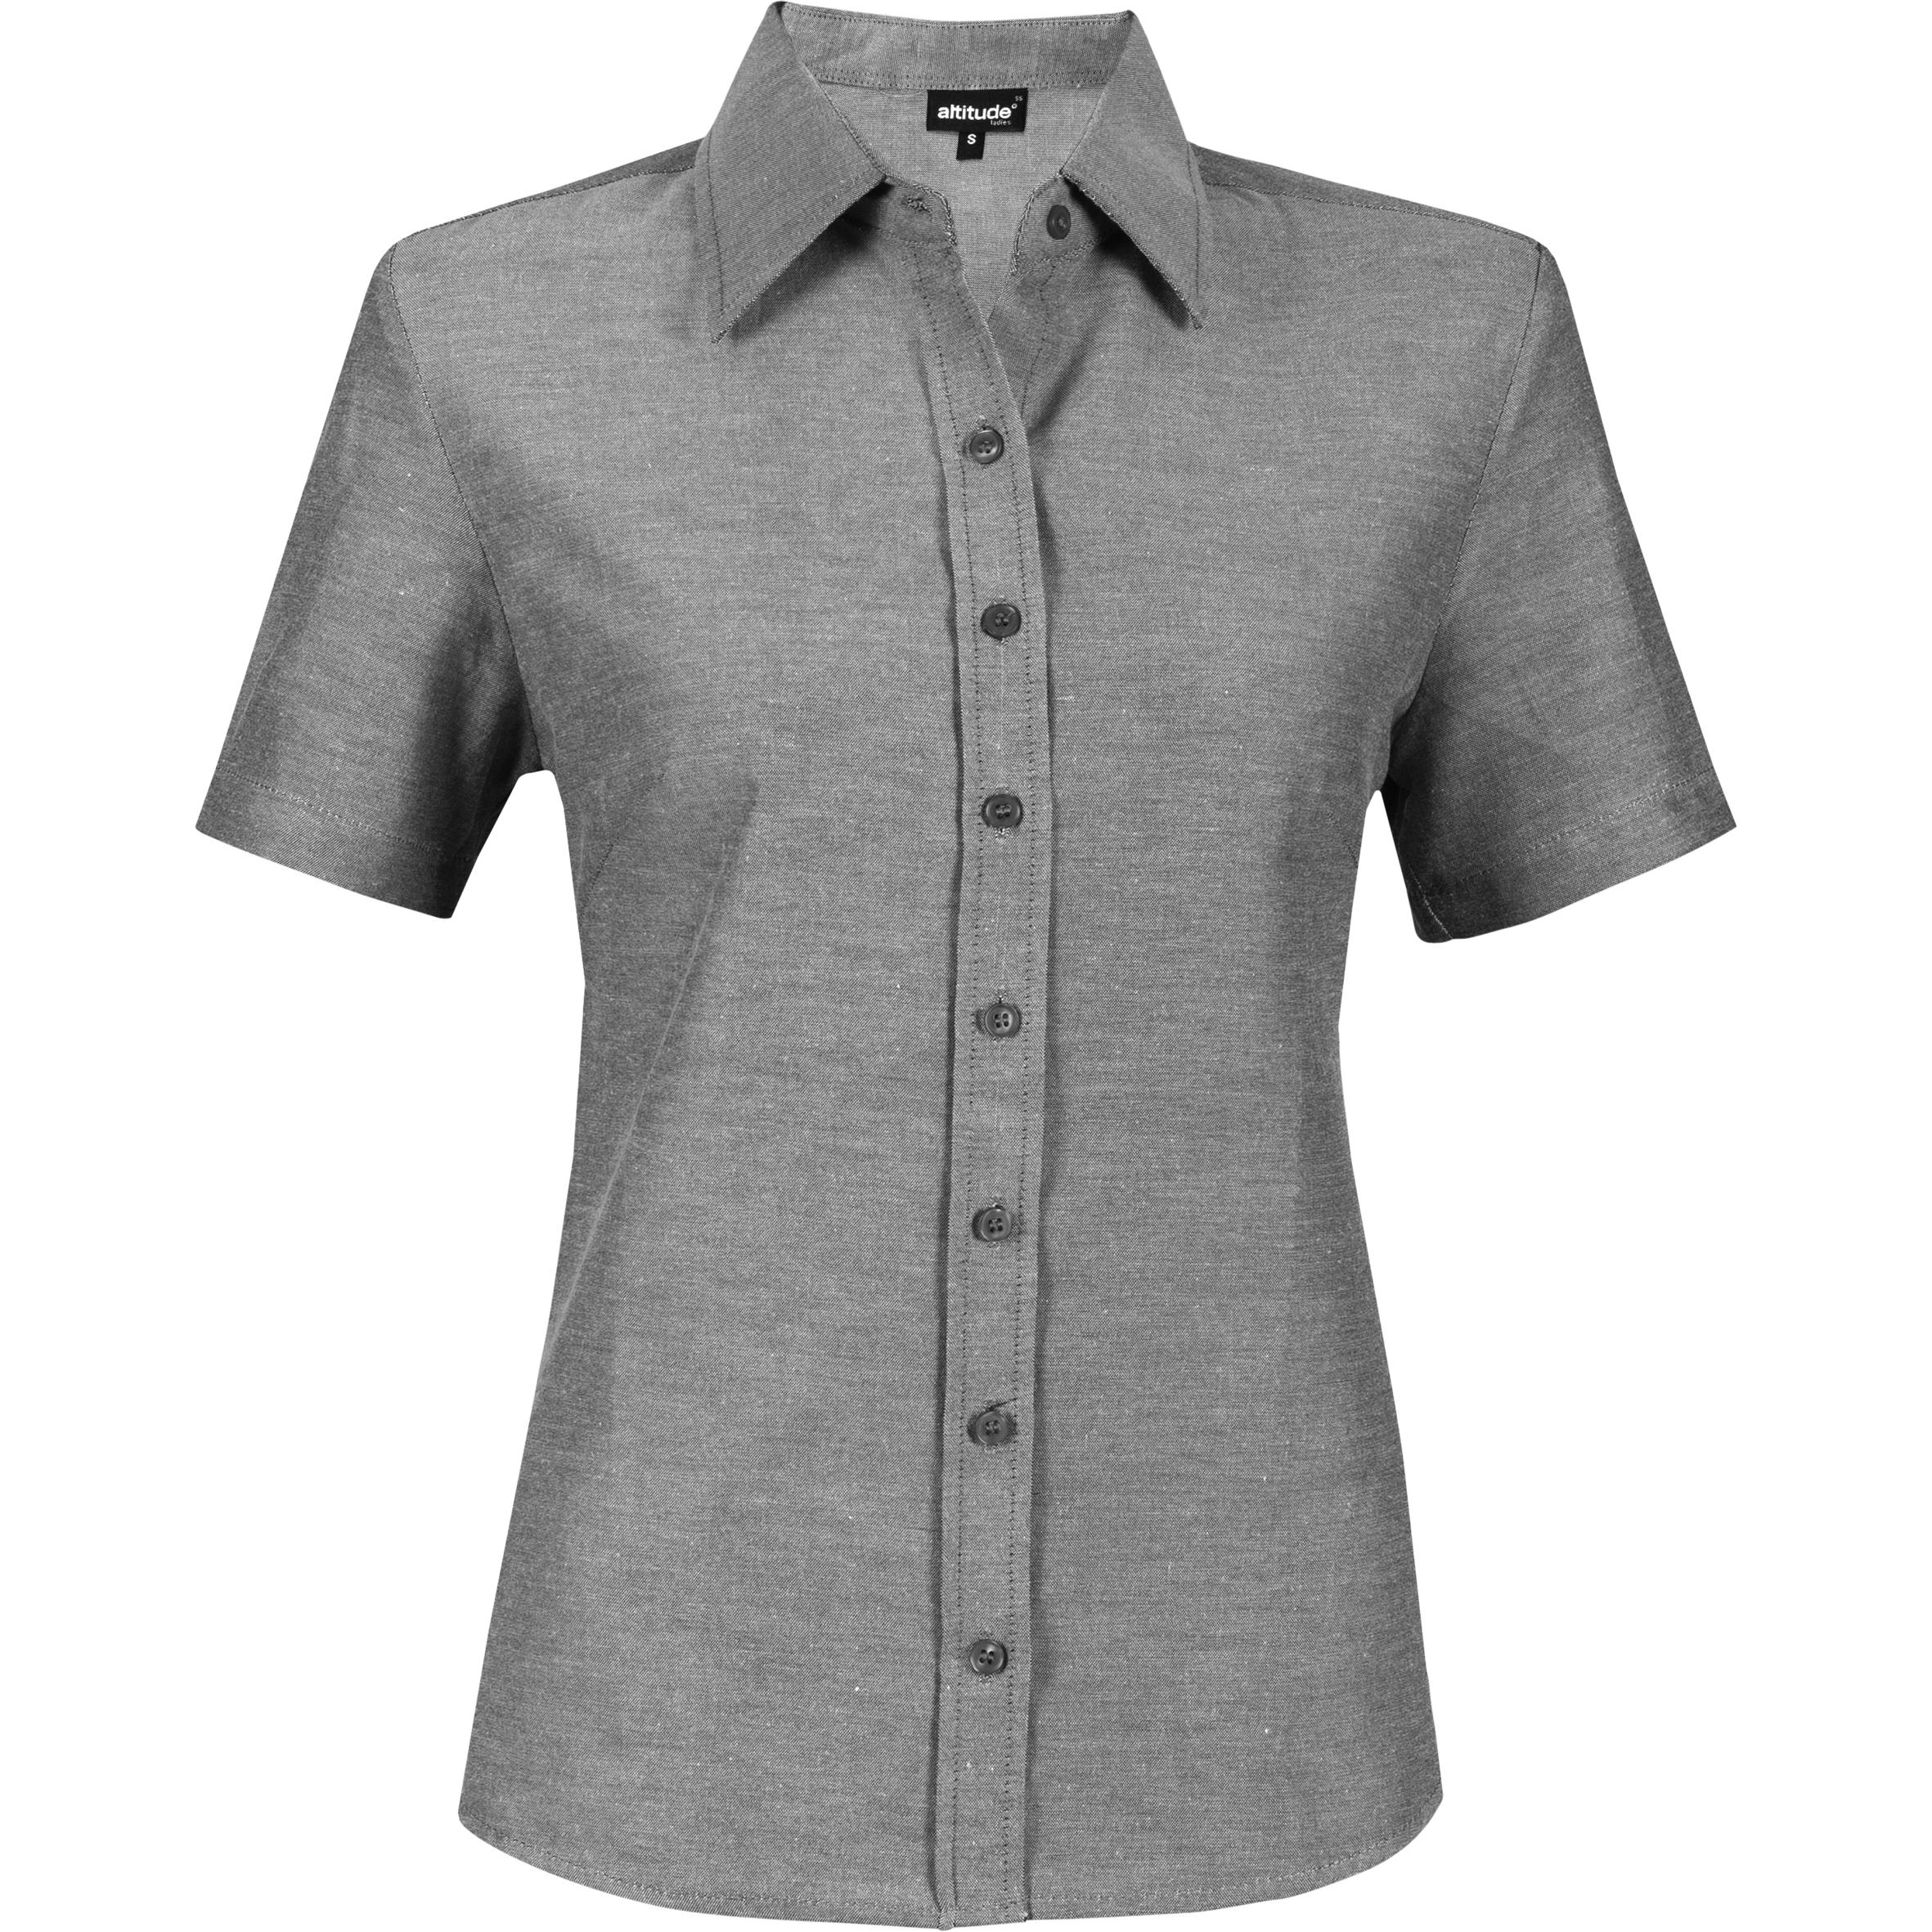 Ladies Short Sleeve Oxford Shirt - Charcoal Only